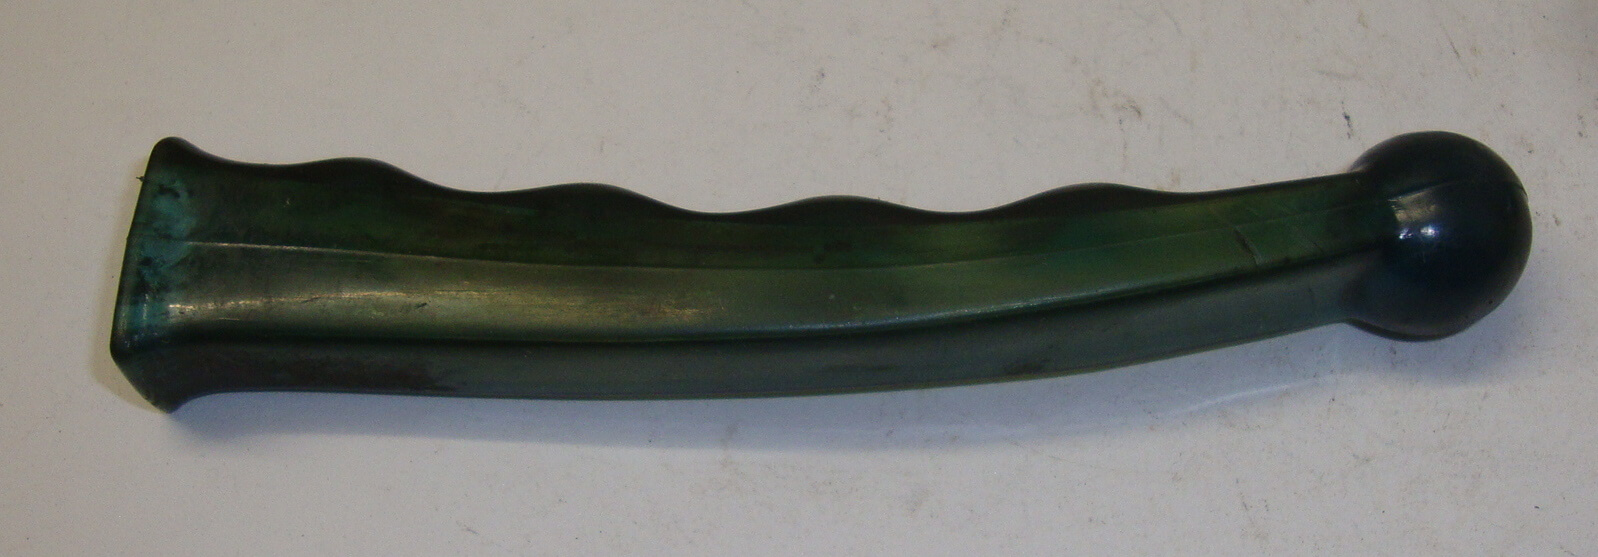 Lever protection, green transparent, METALPLAST 603, Vespa, NOS